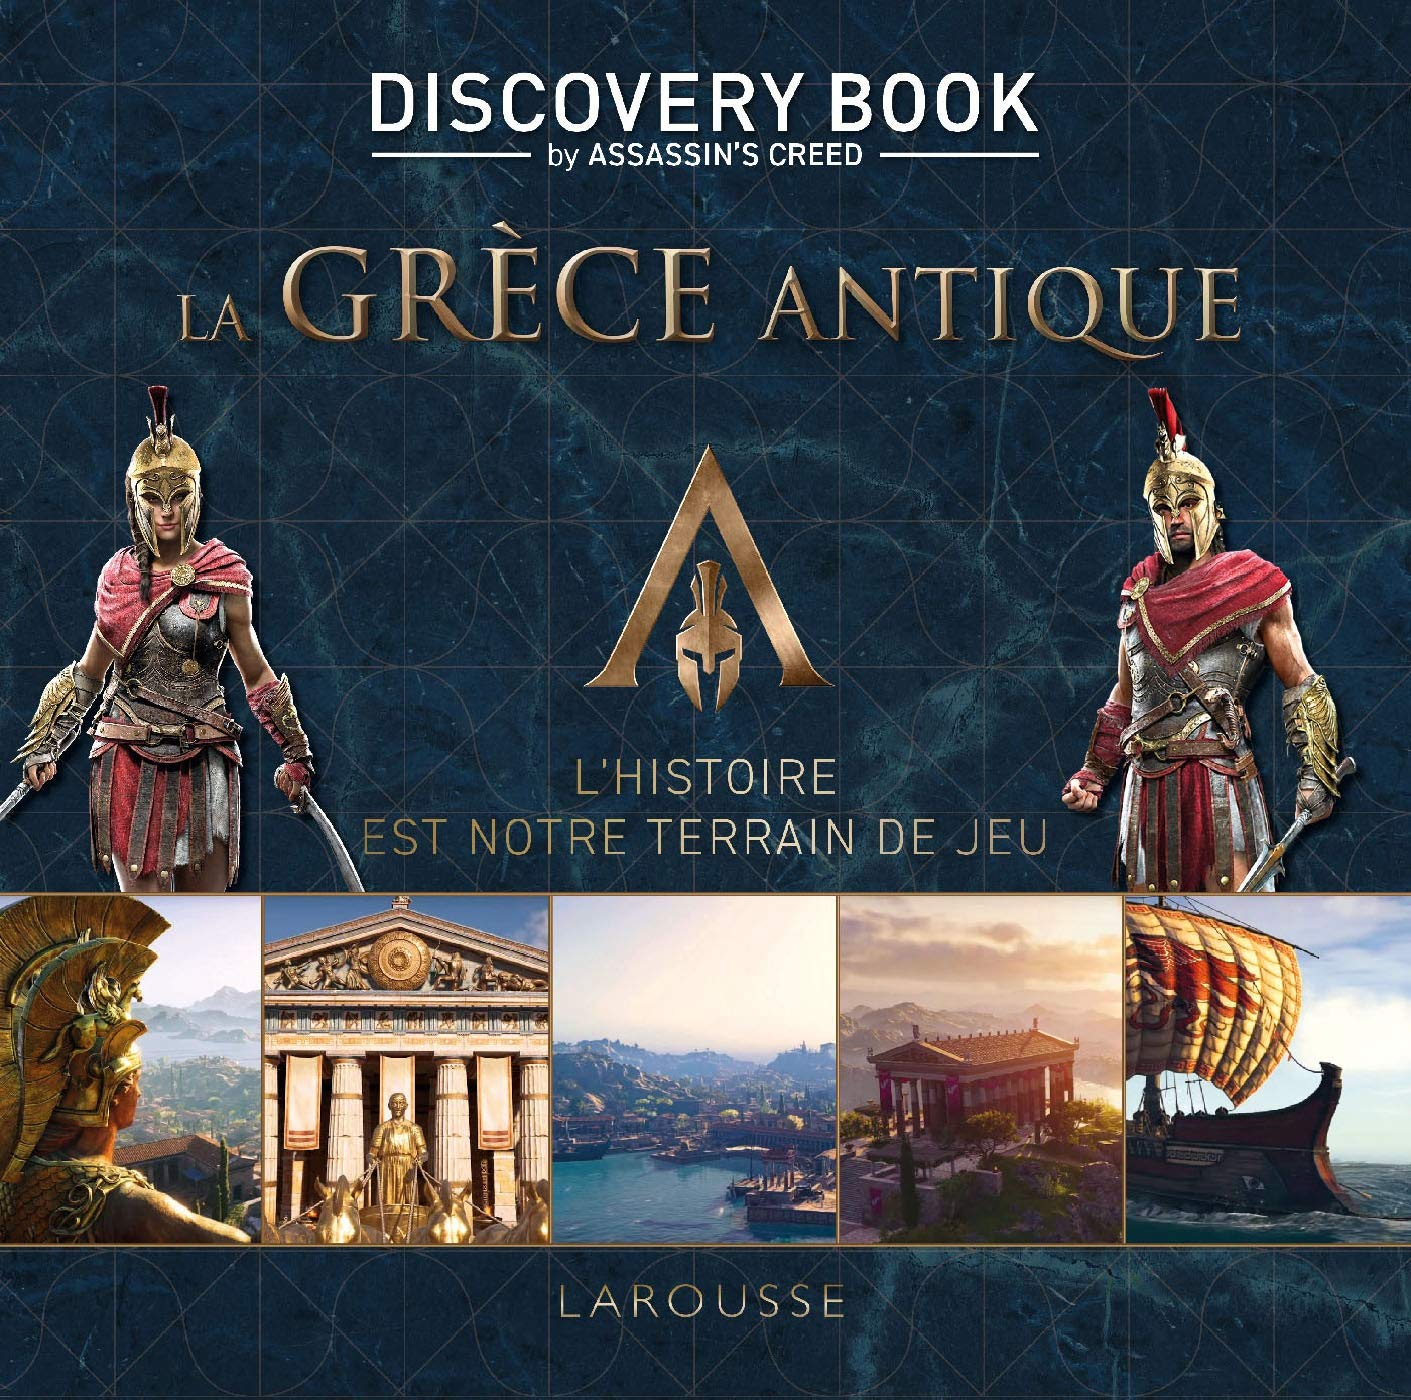 Assassins Creed Discovery Tour Grece Antique